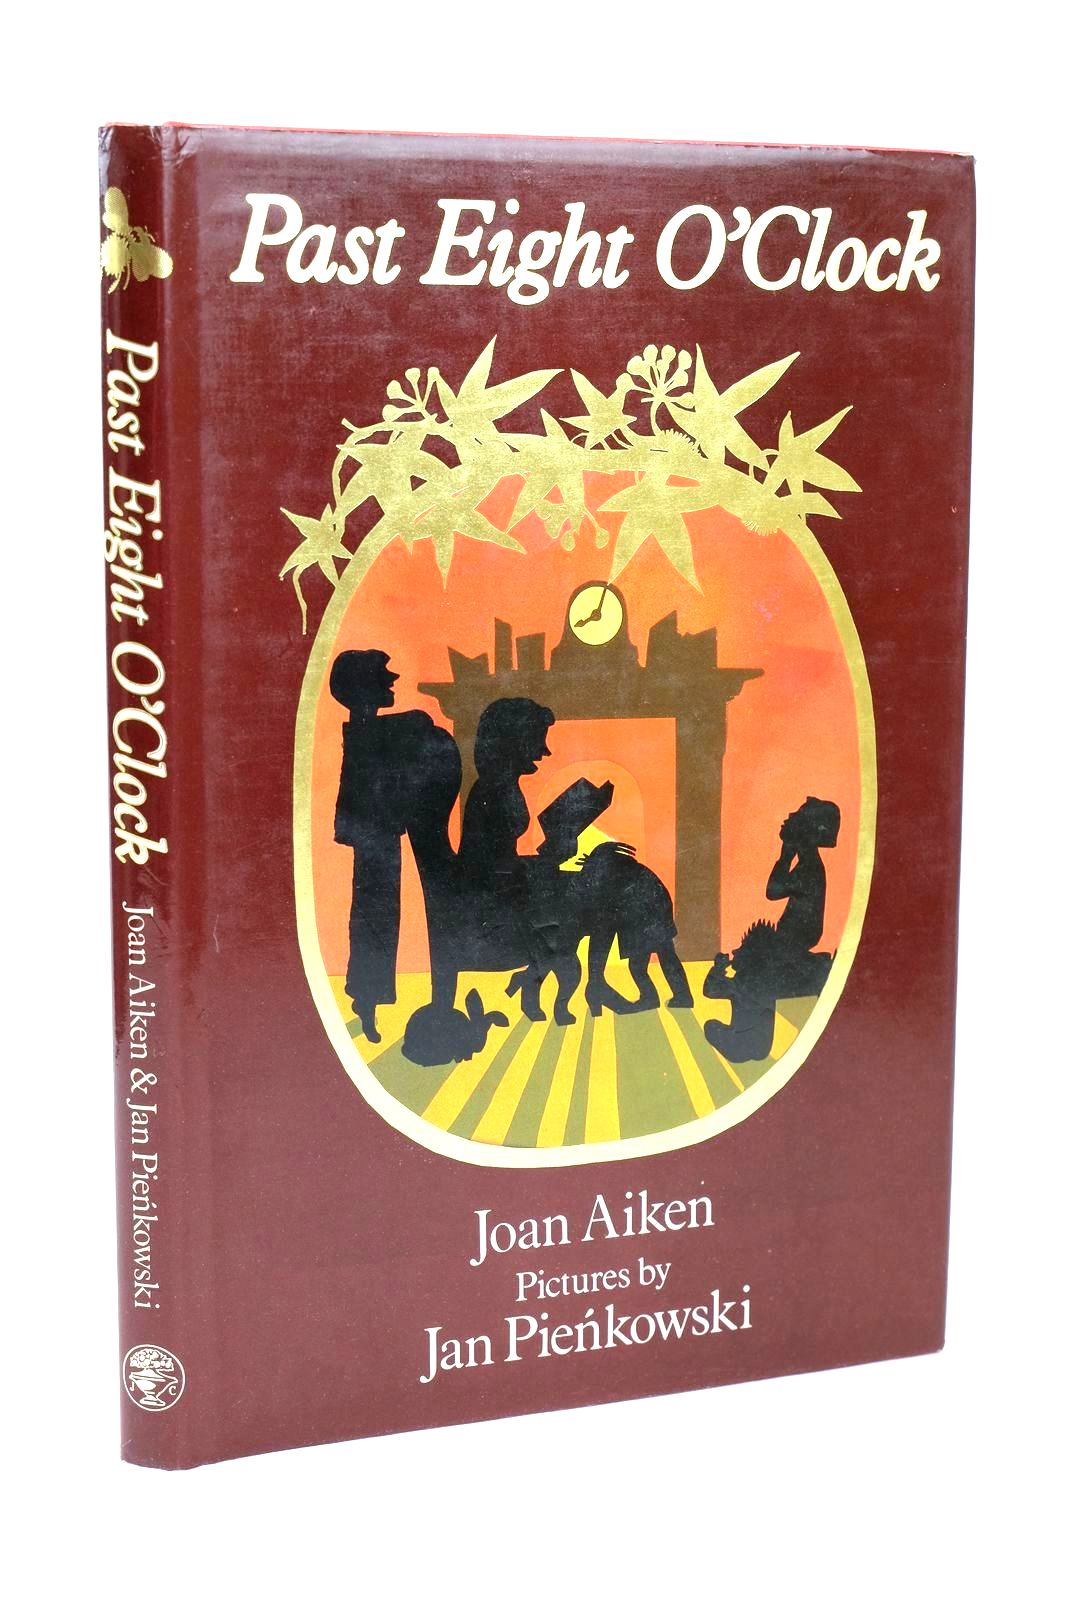 Photo of PAST EIGHT O'CLOCK written by Aiken, Joan illustrated by Pienkowski, Jan published by Jonathan Cape (STOCK CODE: 1318522)  for sale by Stella & Rose's Books